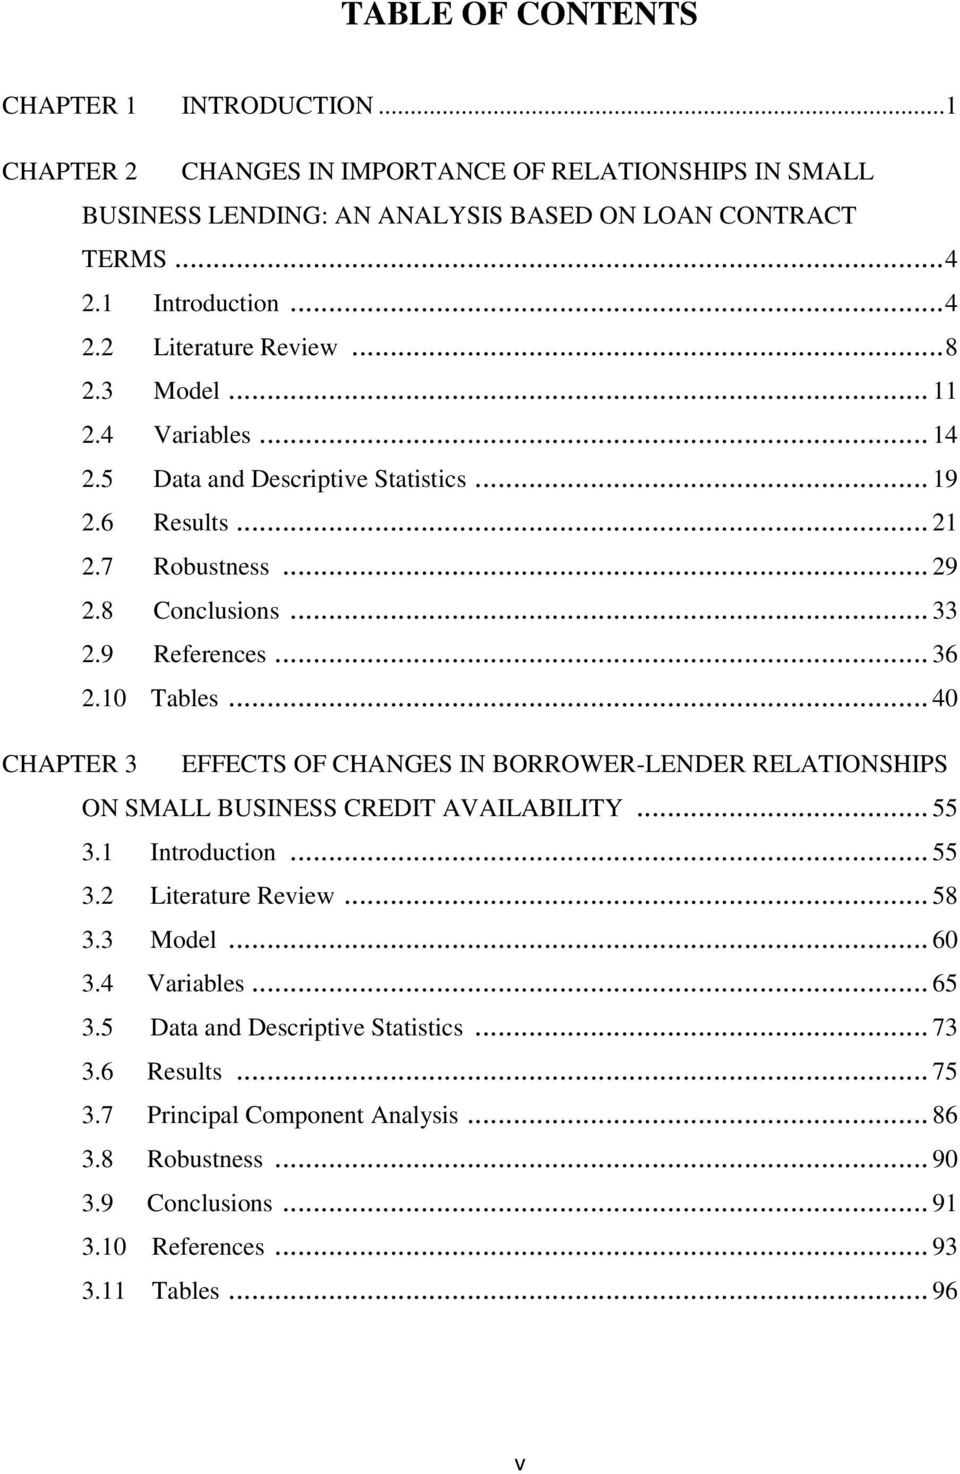 .. 40 CHAPTER 3 EFFECTS OF CHANGES IN BORROWER-LENDER RELATIONSHIPS ON SMALL BUSINESS CREDIT AVAILABILITY... 55 3.1 Introduction... 55 3.2 Literature Review... 58 3.3 Model... 60 3.4 Variables.